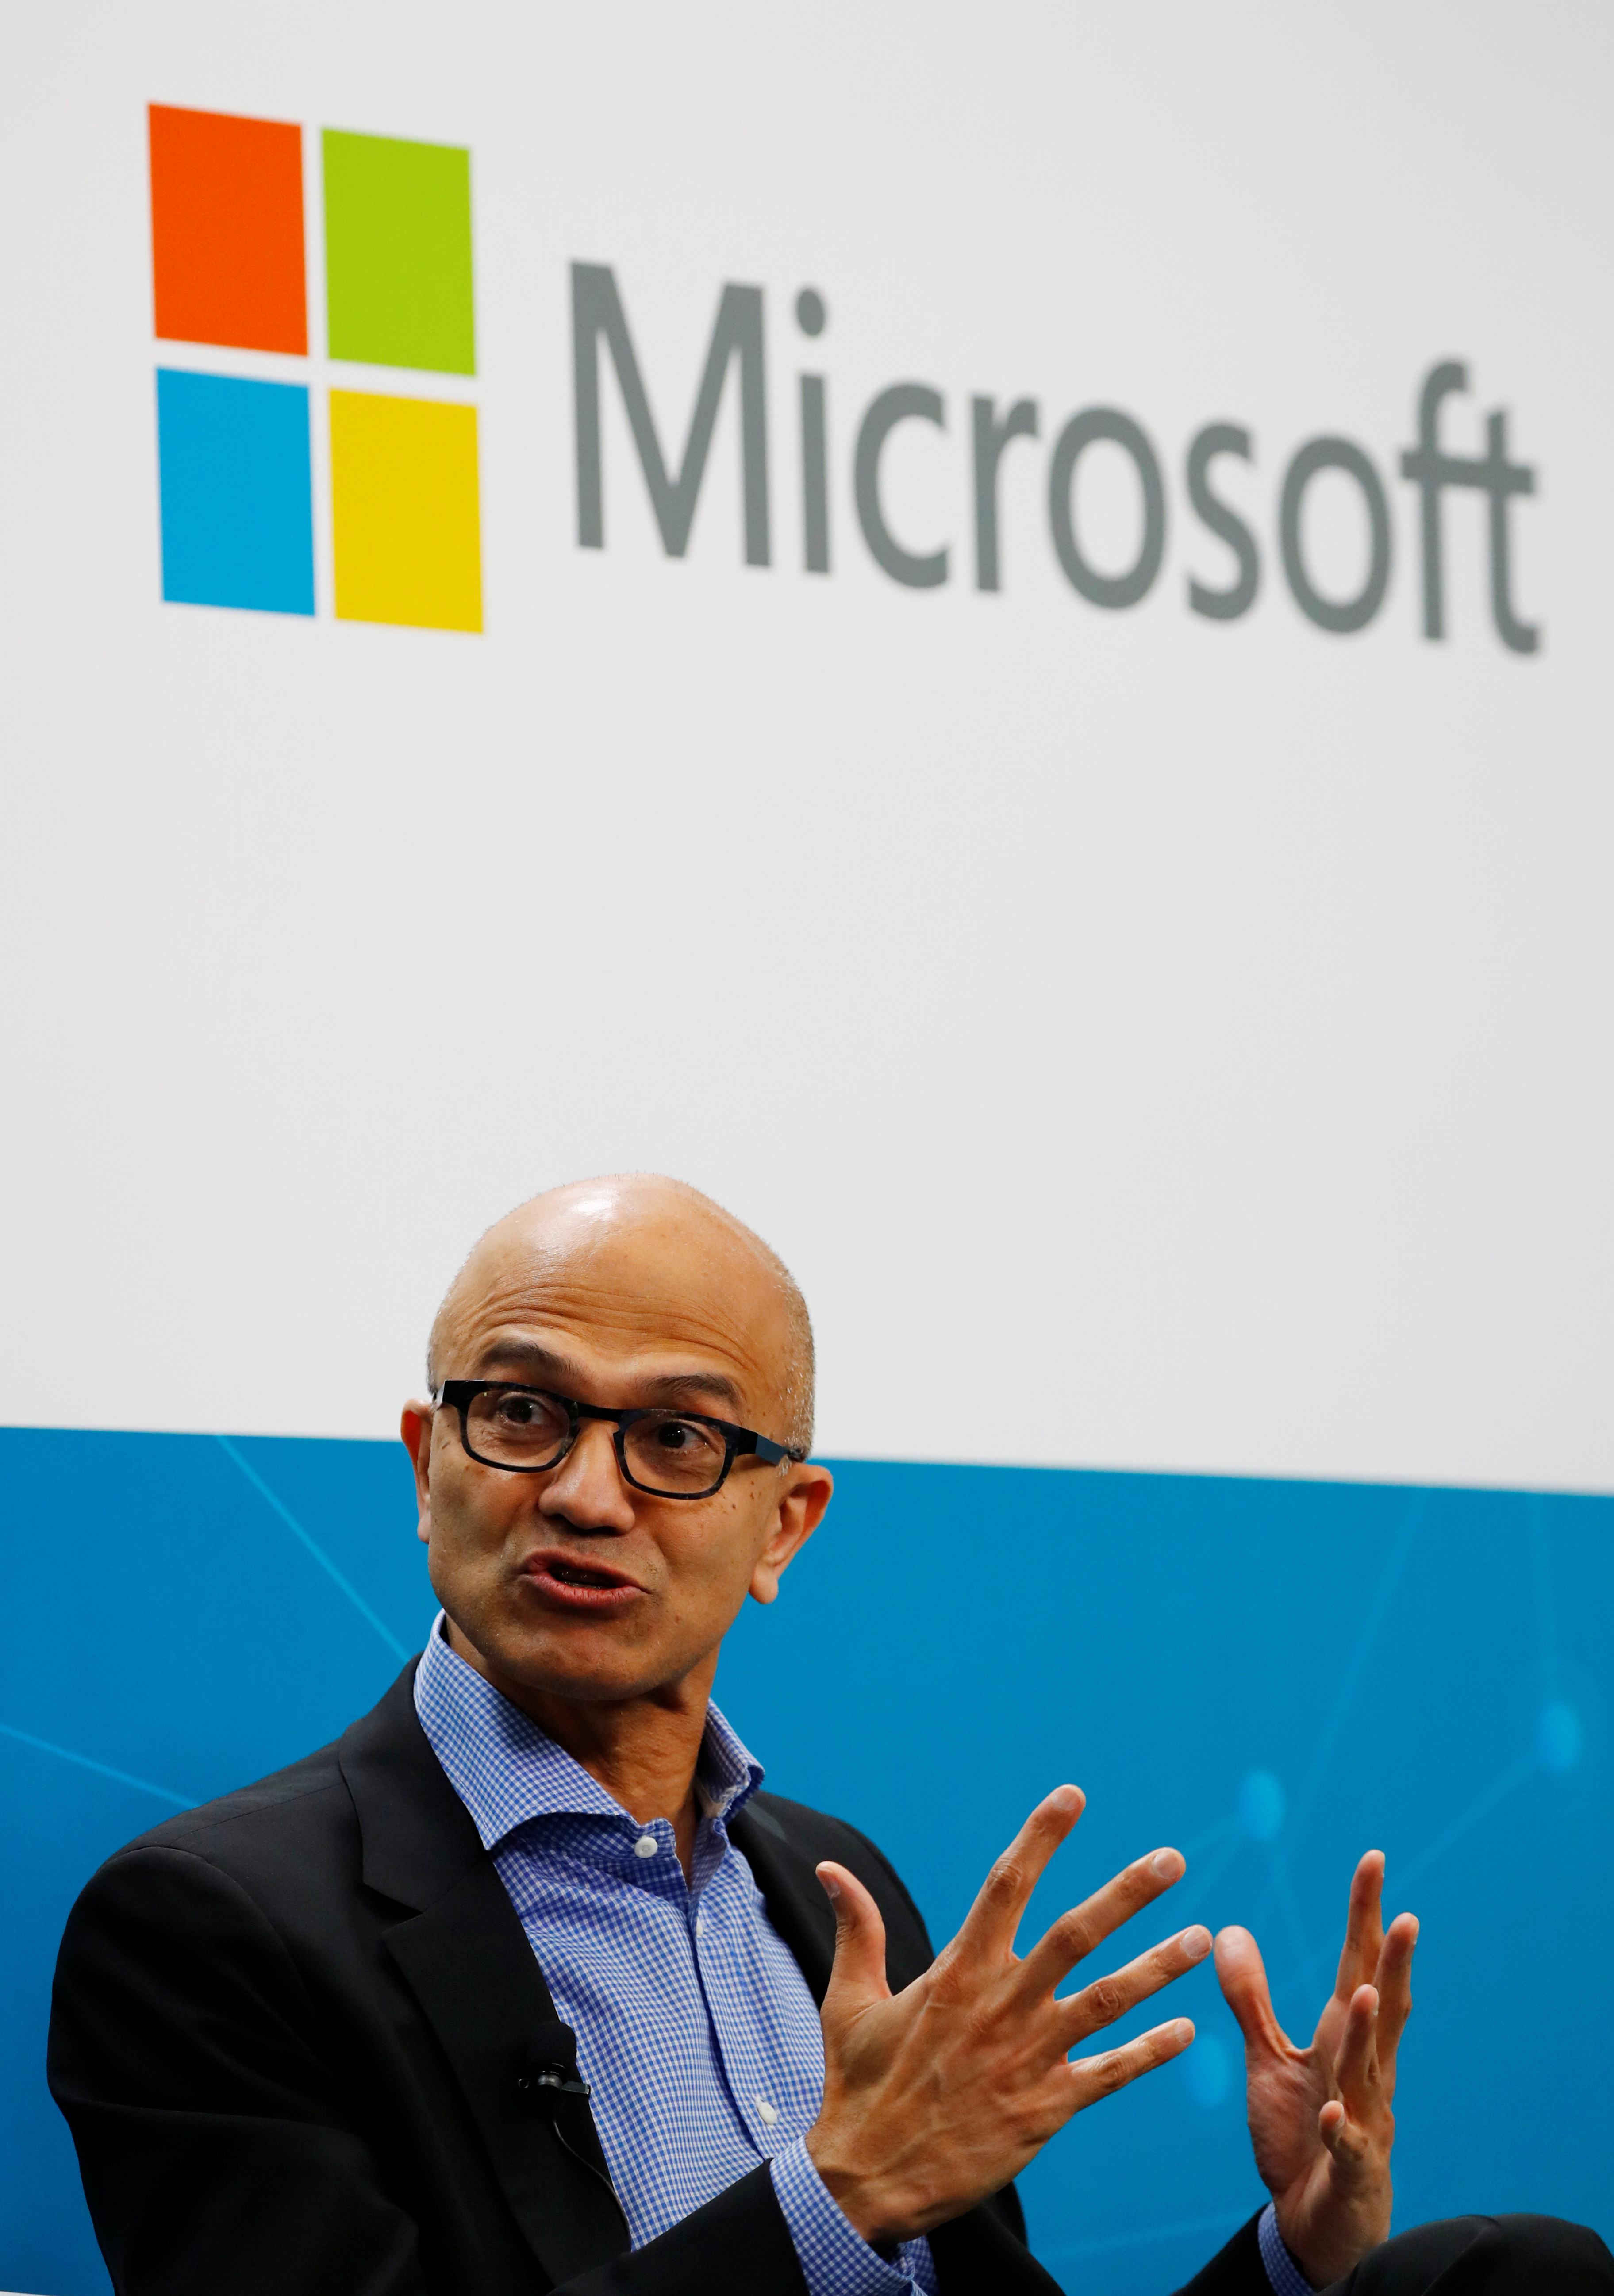 Microsoft CEO Satya Nadella addresses a news conference in Berlin, Germany February 27, 2019. REUTERS/Fabrizio Bensch